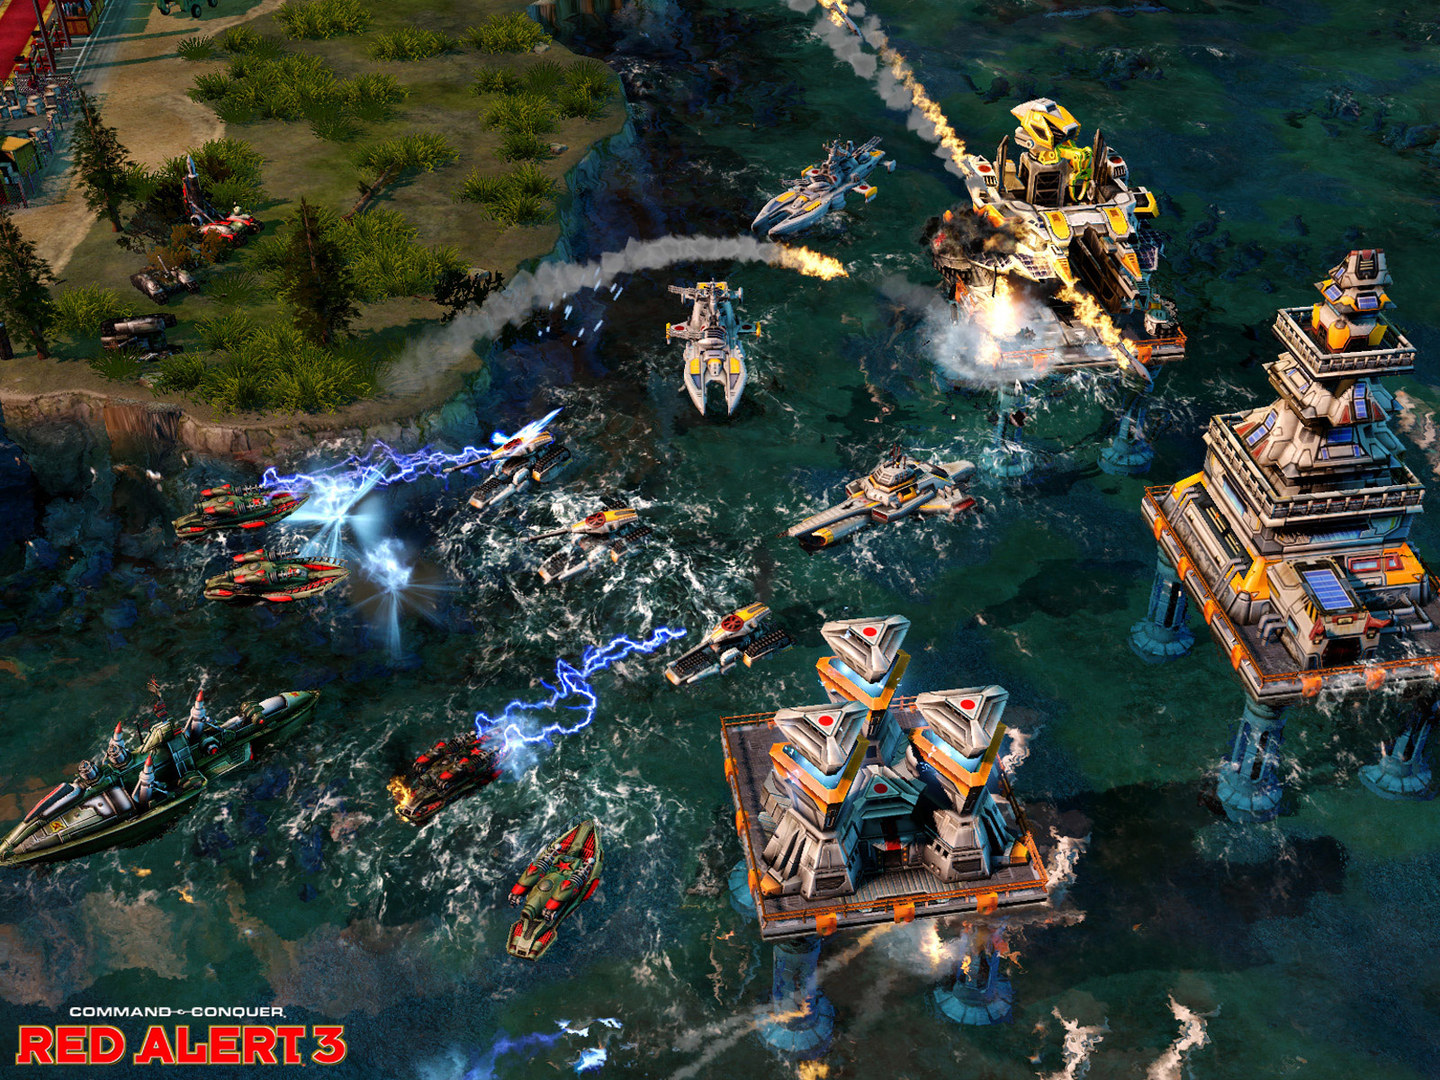 download red alert 3 free full version